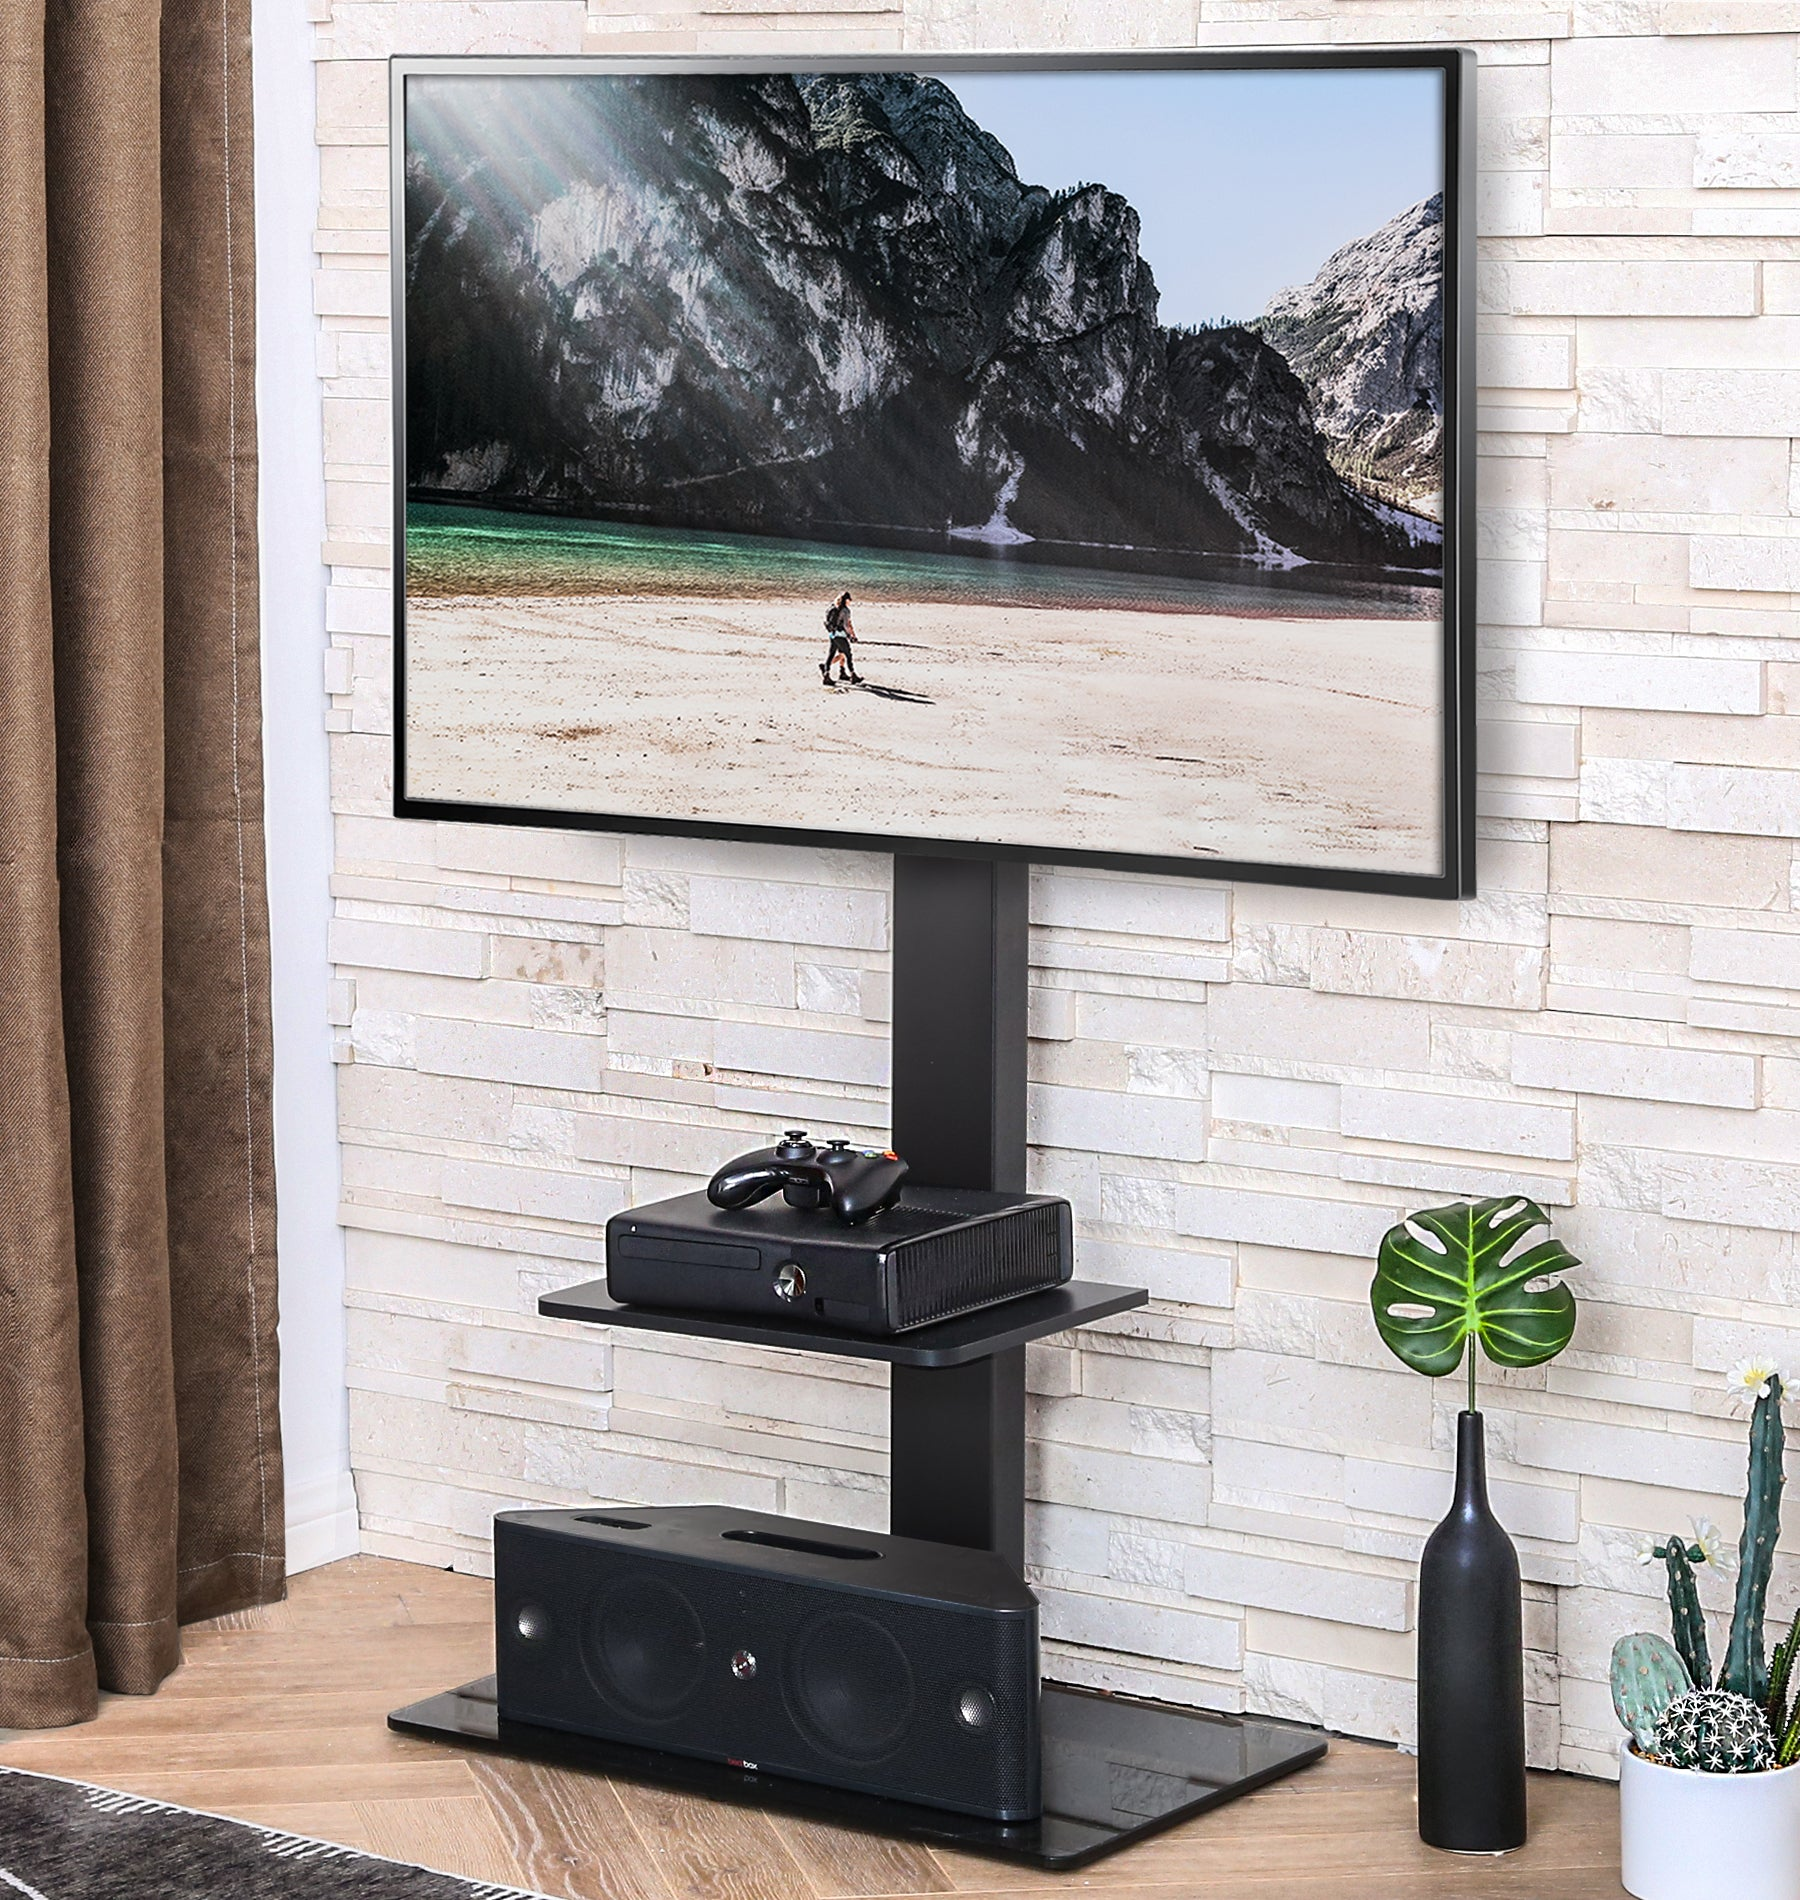 Picture of: Fitueyes Swivel Floor Tv Stand With Mount For 32 65 Inch Samsung Lg Vi Fitueyes